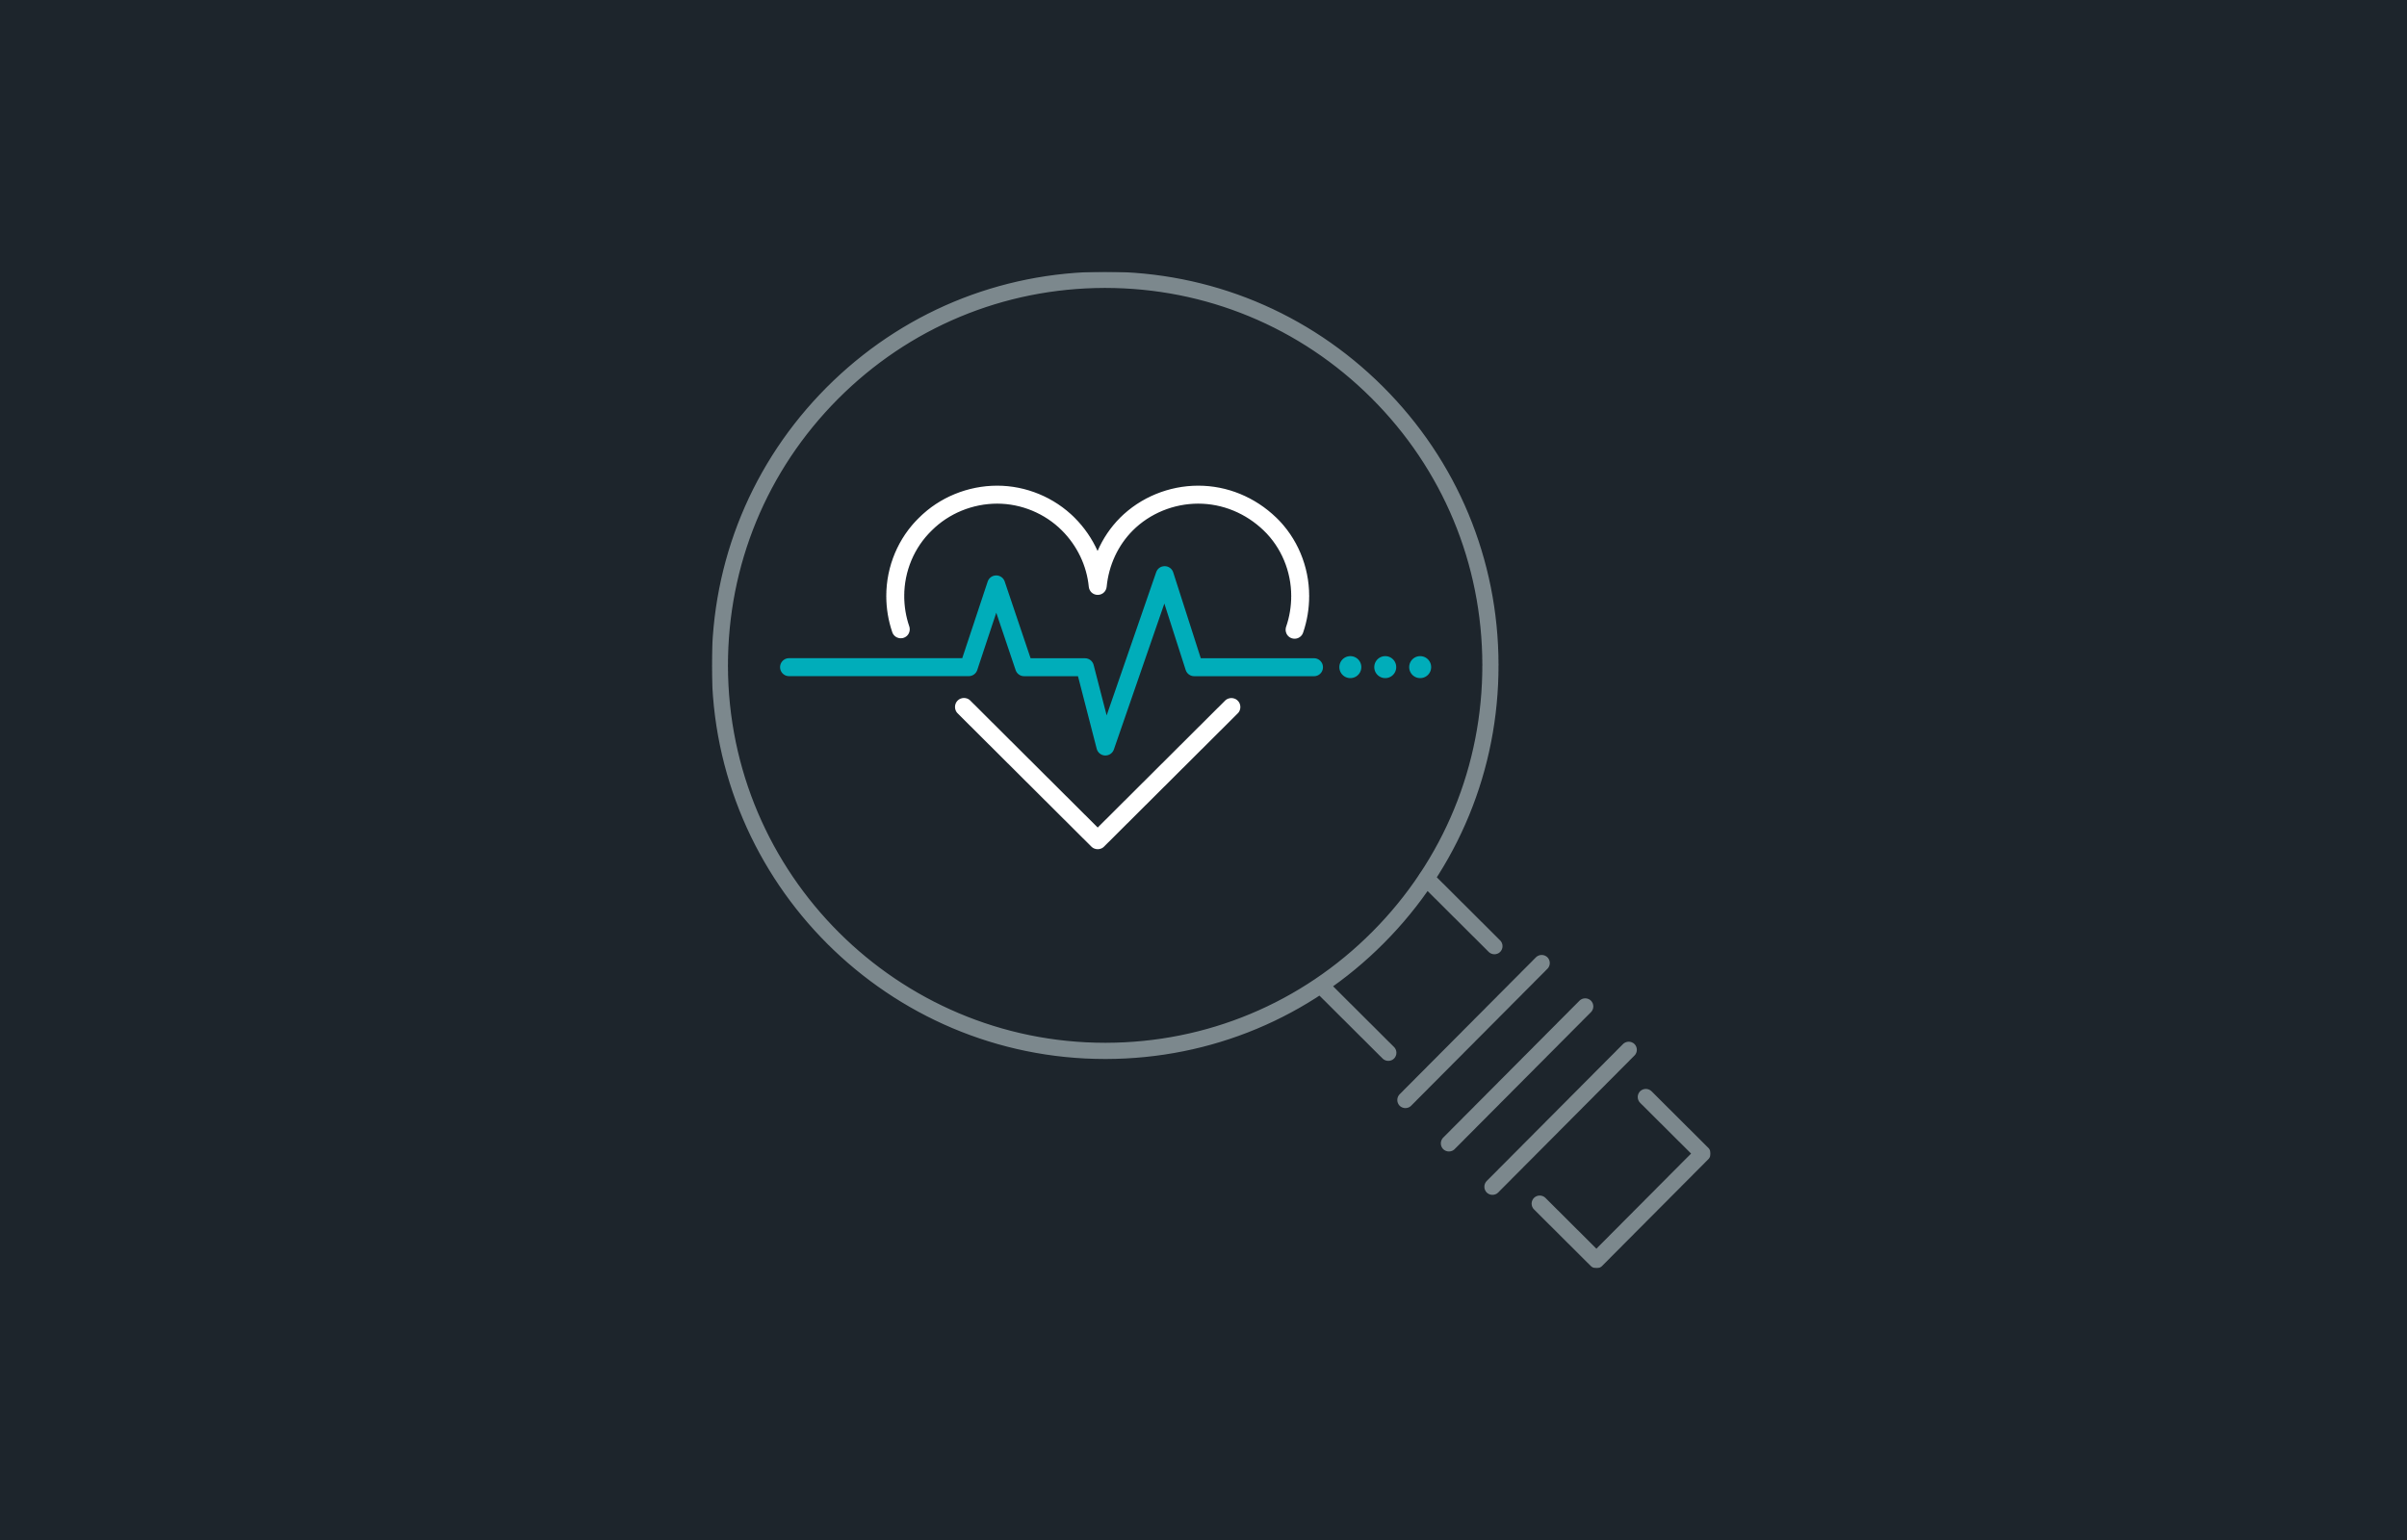 Tomorrow Cardiovascular health icon – design by Ian Whalley